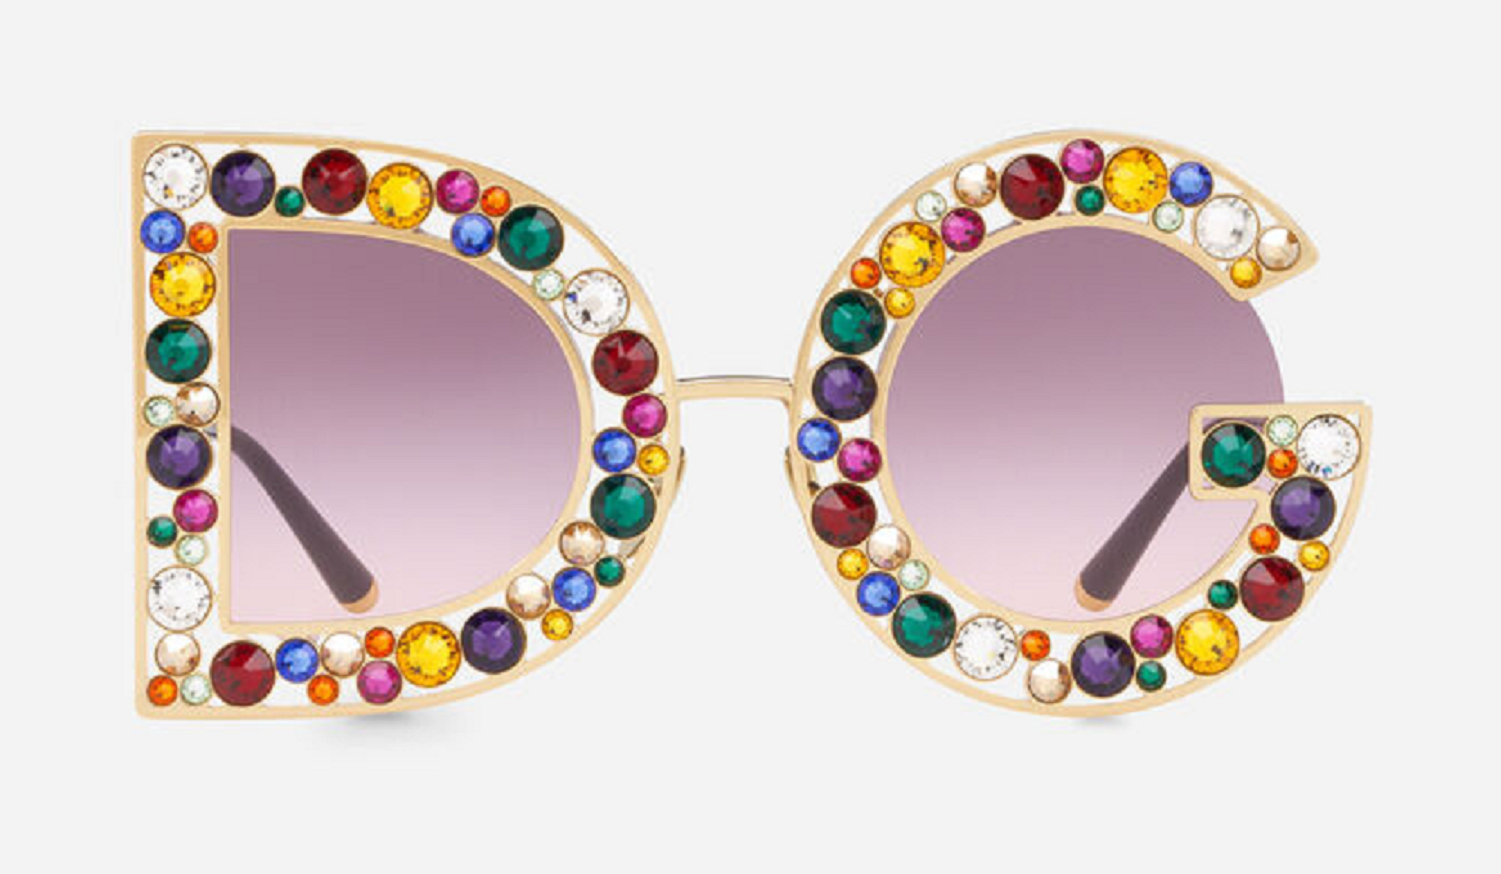 Bling sunglasses D&G Obsessed Shimerring Gold Metal Frame with Shiny Multicolor Crystals